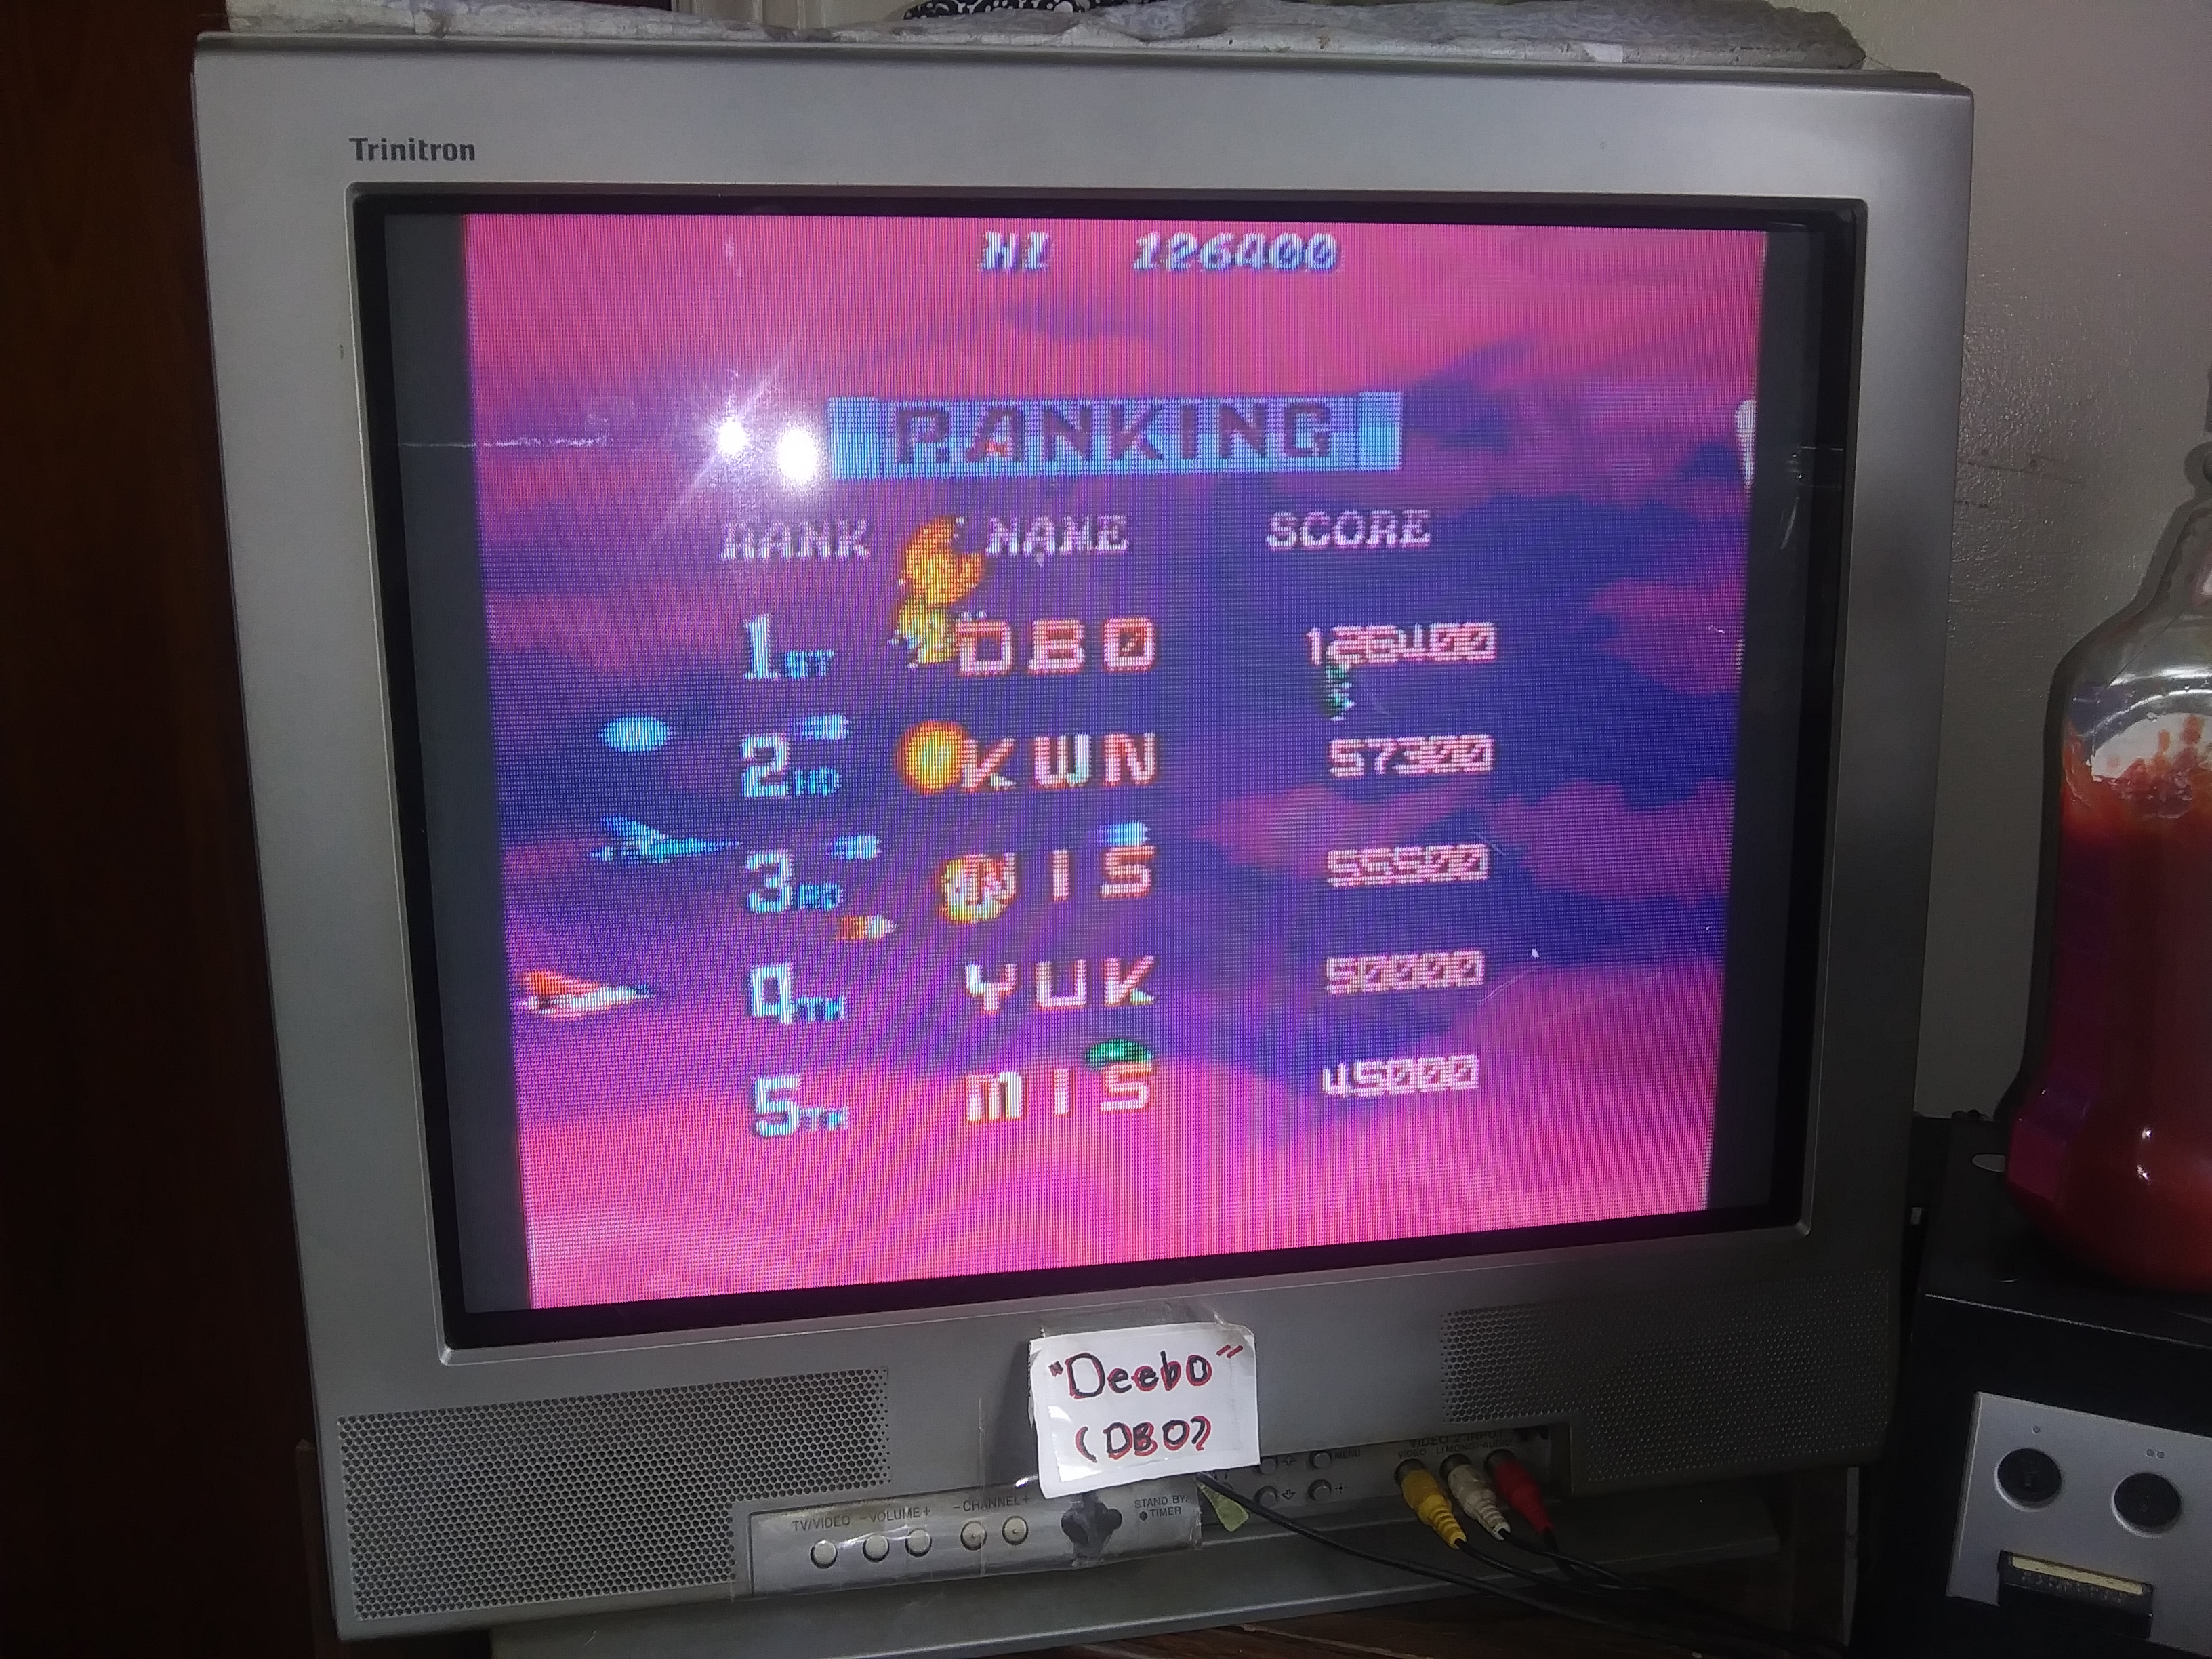 Deebo: Salamander 2 (Arcade) 126,400 points on 2019-07-16 14:39:00